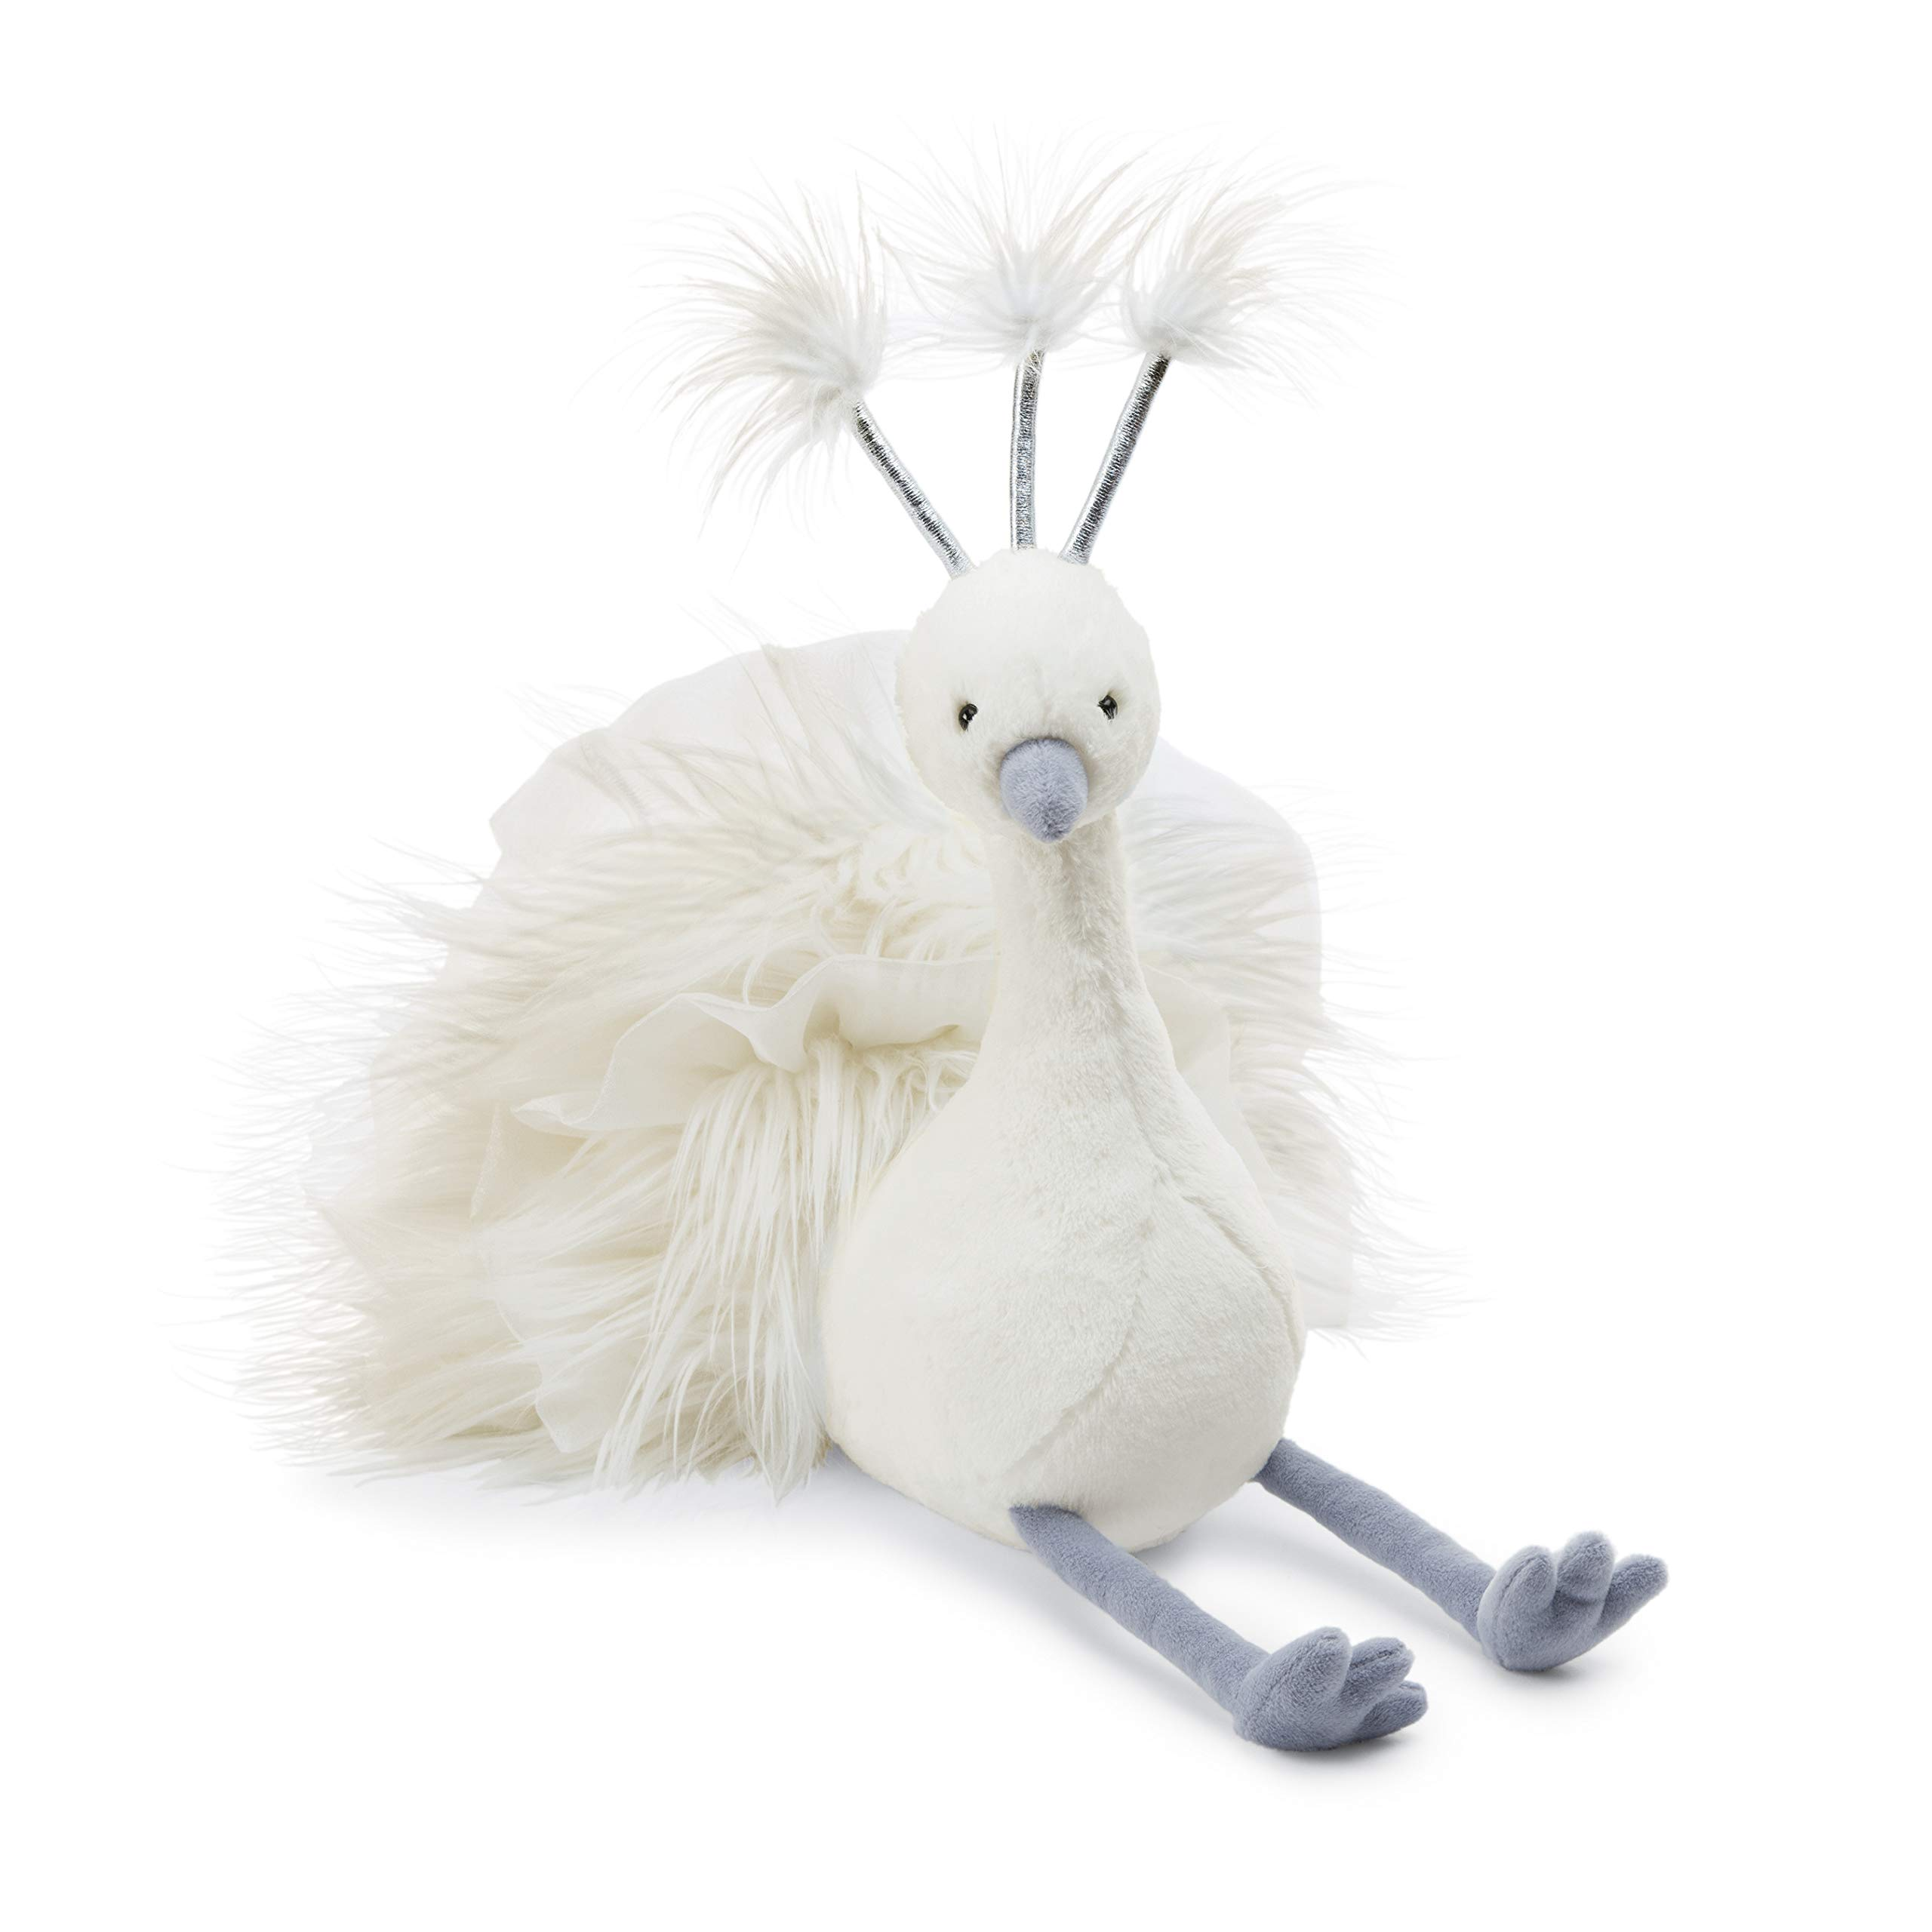 Jellycat Lola Wingaling Peacock Stuffed Animal, 20 inches by Jellycat